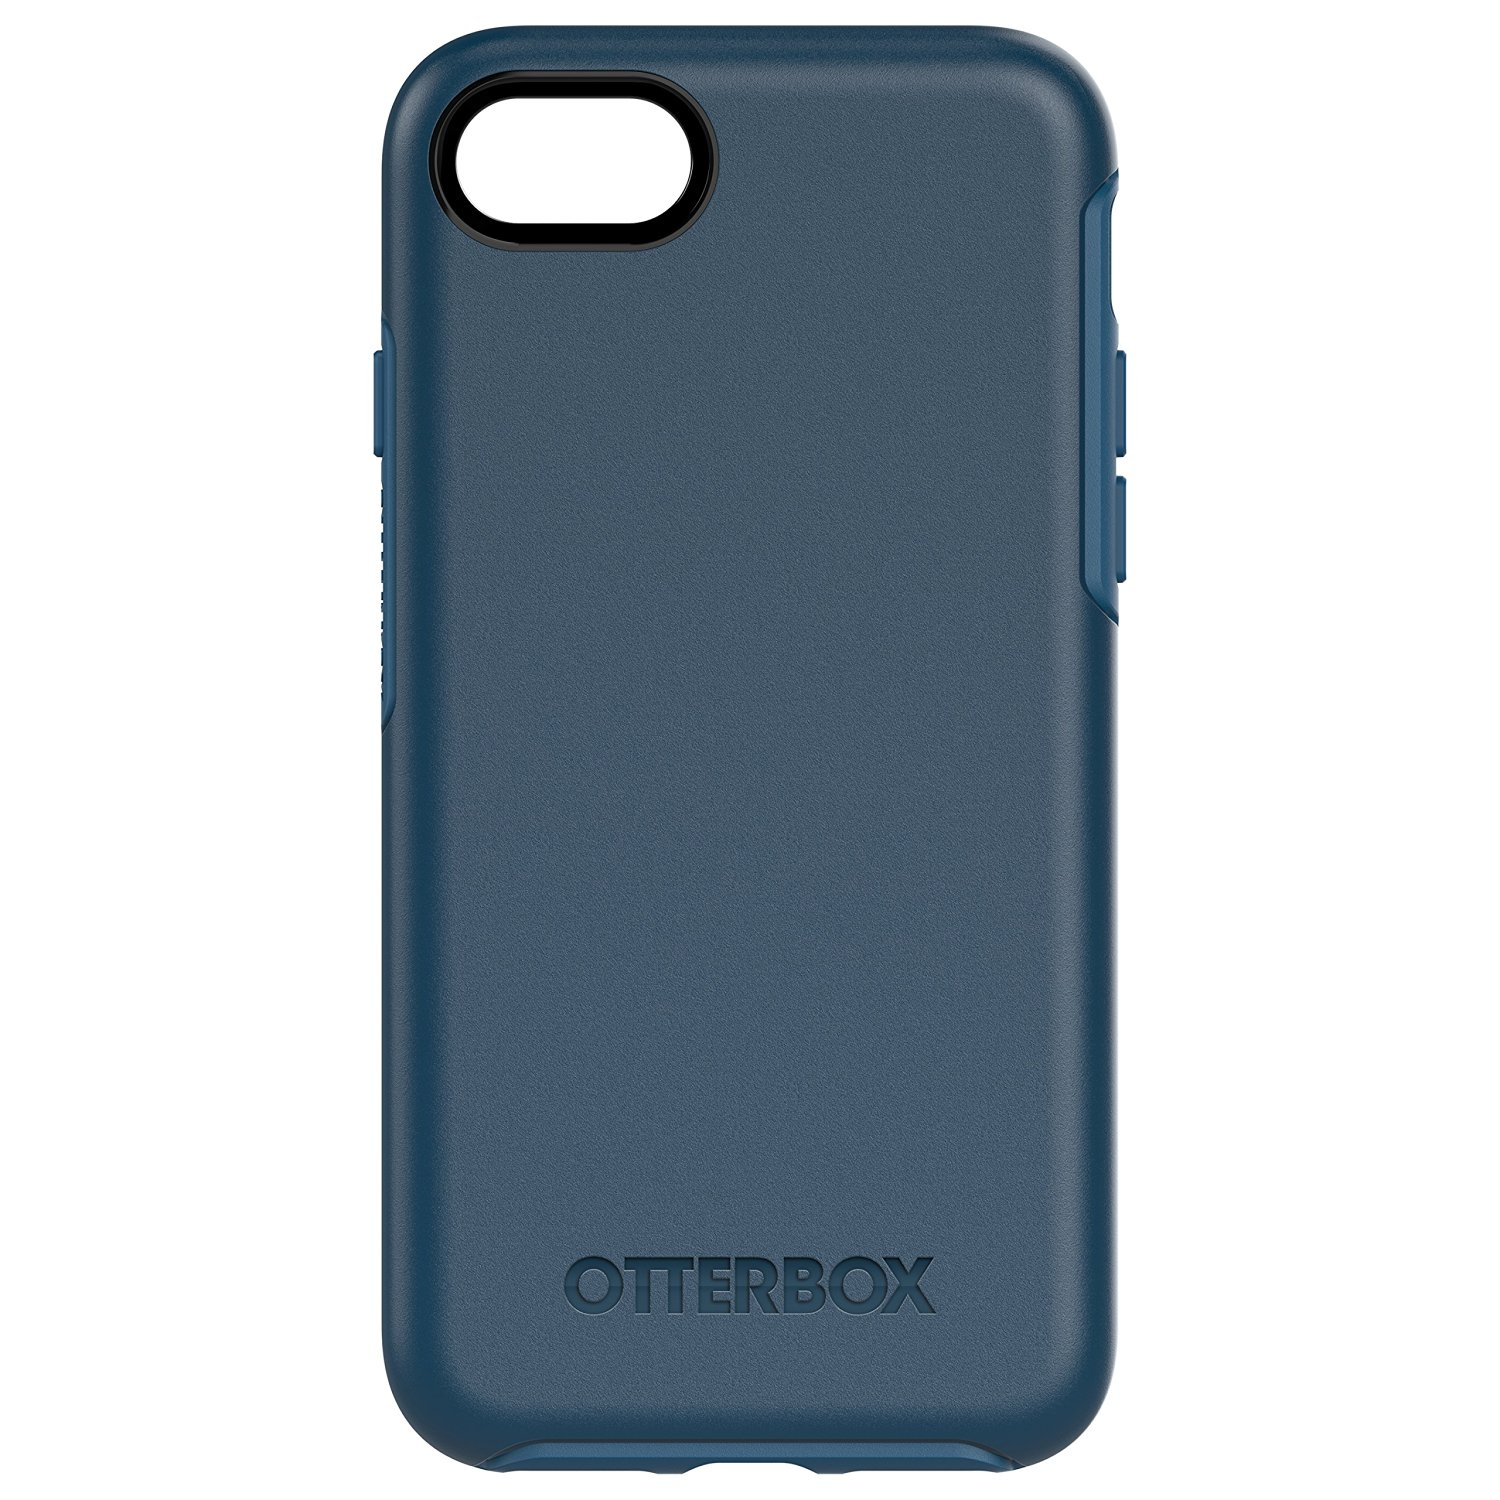 OtterBox-Symmetry-Series-Sleek-Drop-Protection-Case-for-iPhone-7-iPhone-8-SI